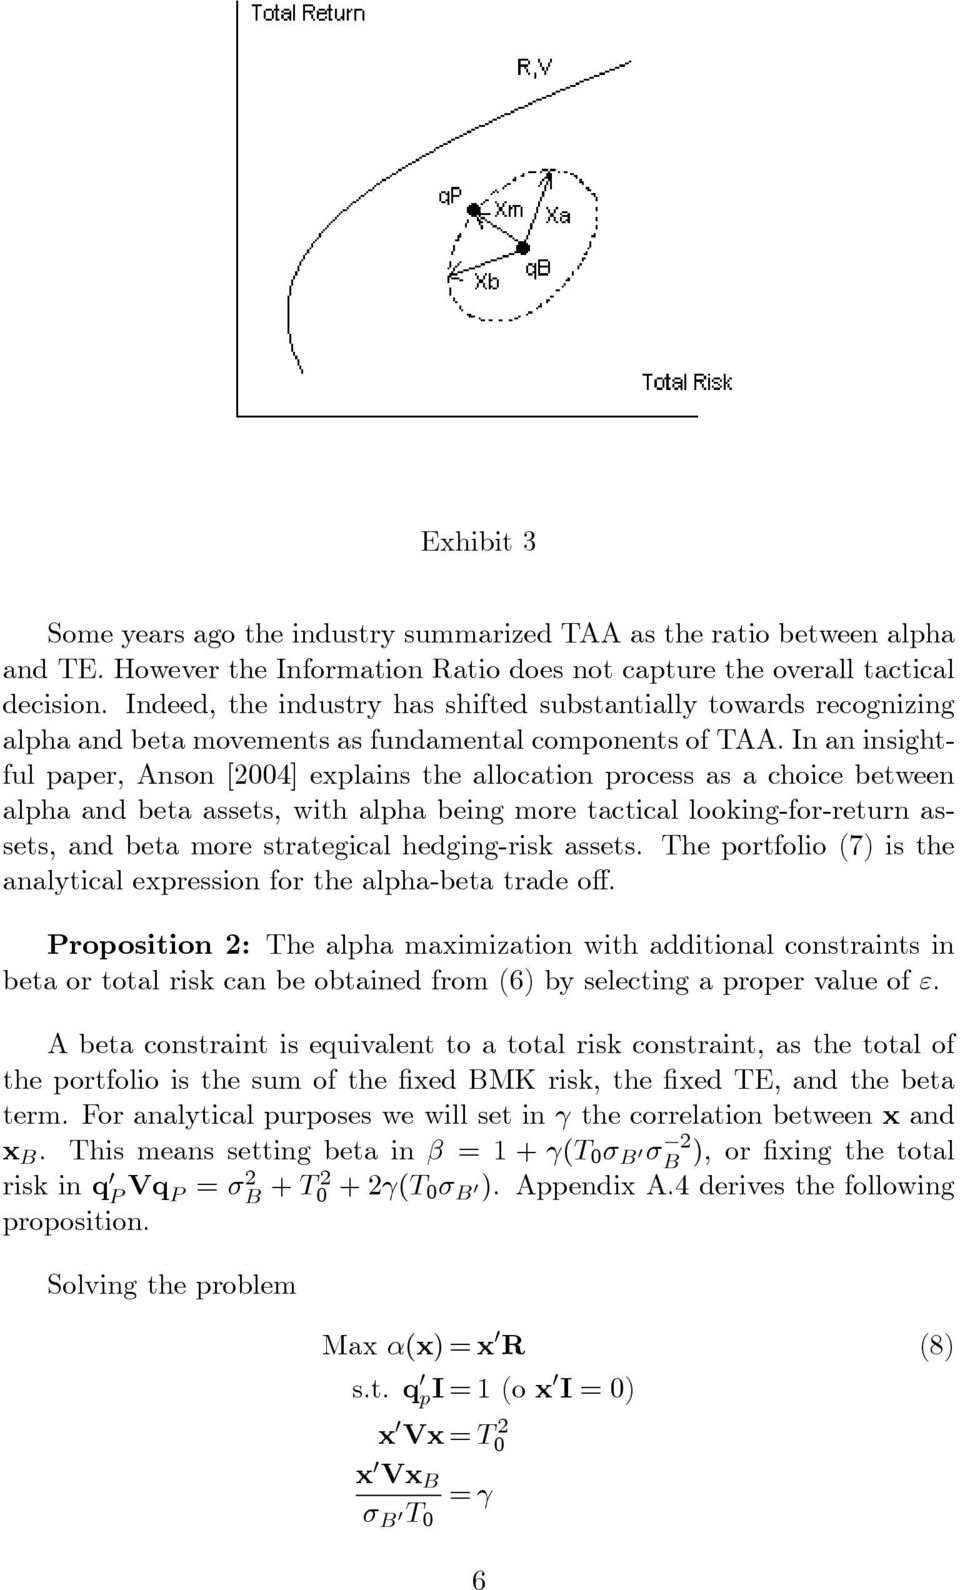 In an insightful paper, Anson [2004] explains the allocation process as a choice between alpha and beta assets, with alpha being more tactical looking-for-return assets, and beta more strategical